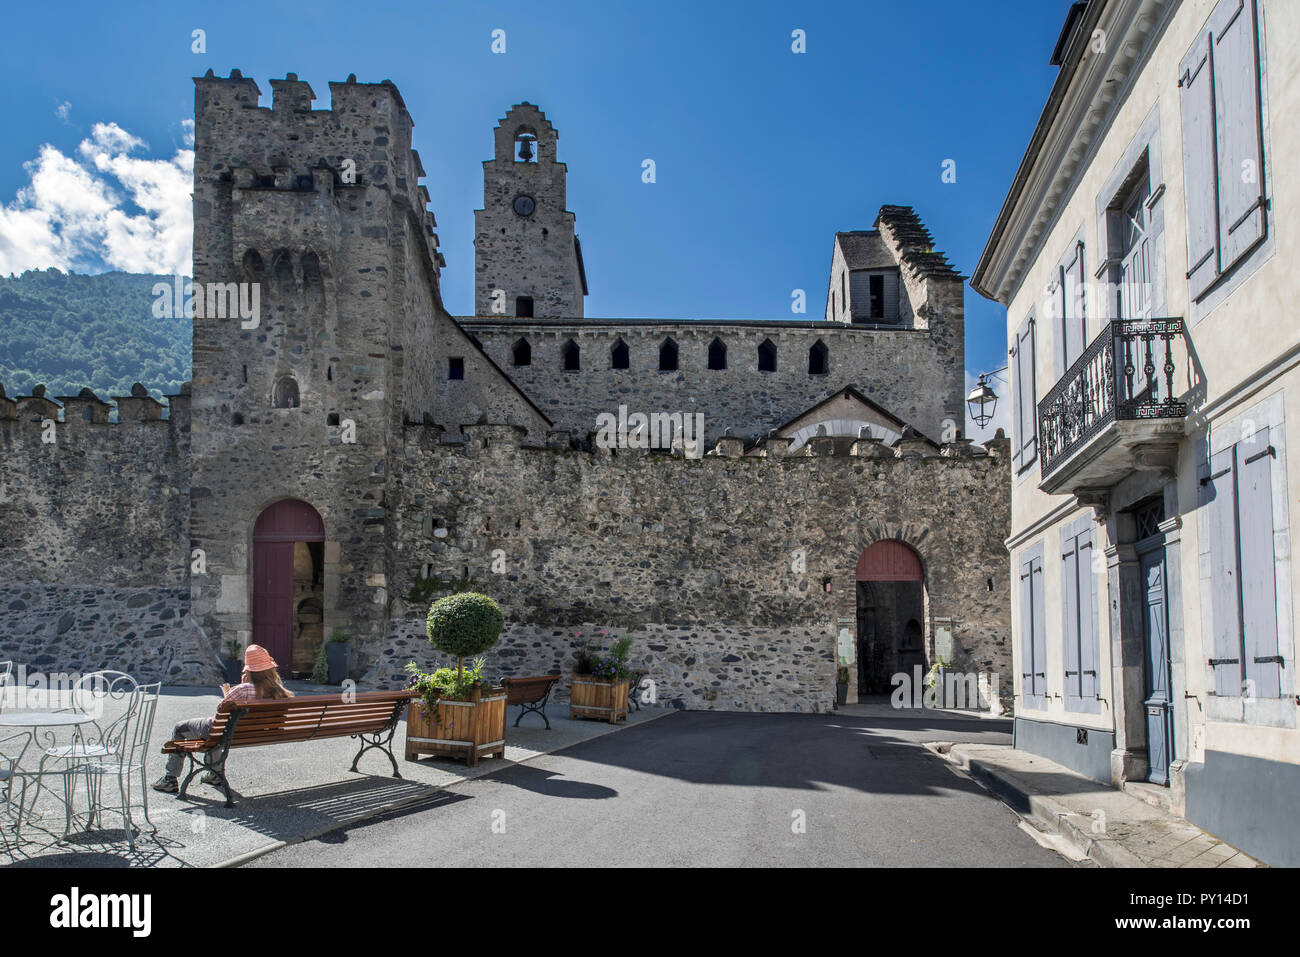 Twelfth century Église des Templiers / Templar church in the village Luz-Saint-Sauveur, Hautes-Pyrénées, France - Stock Image